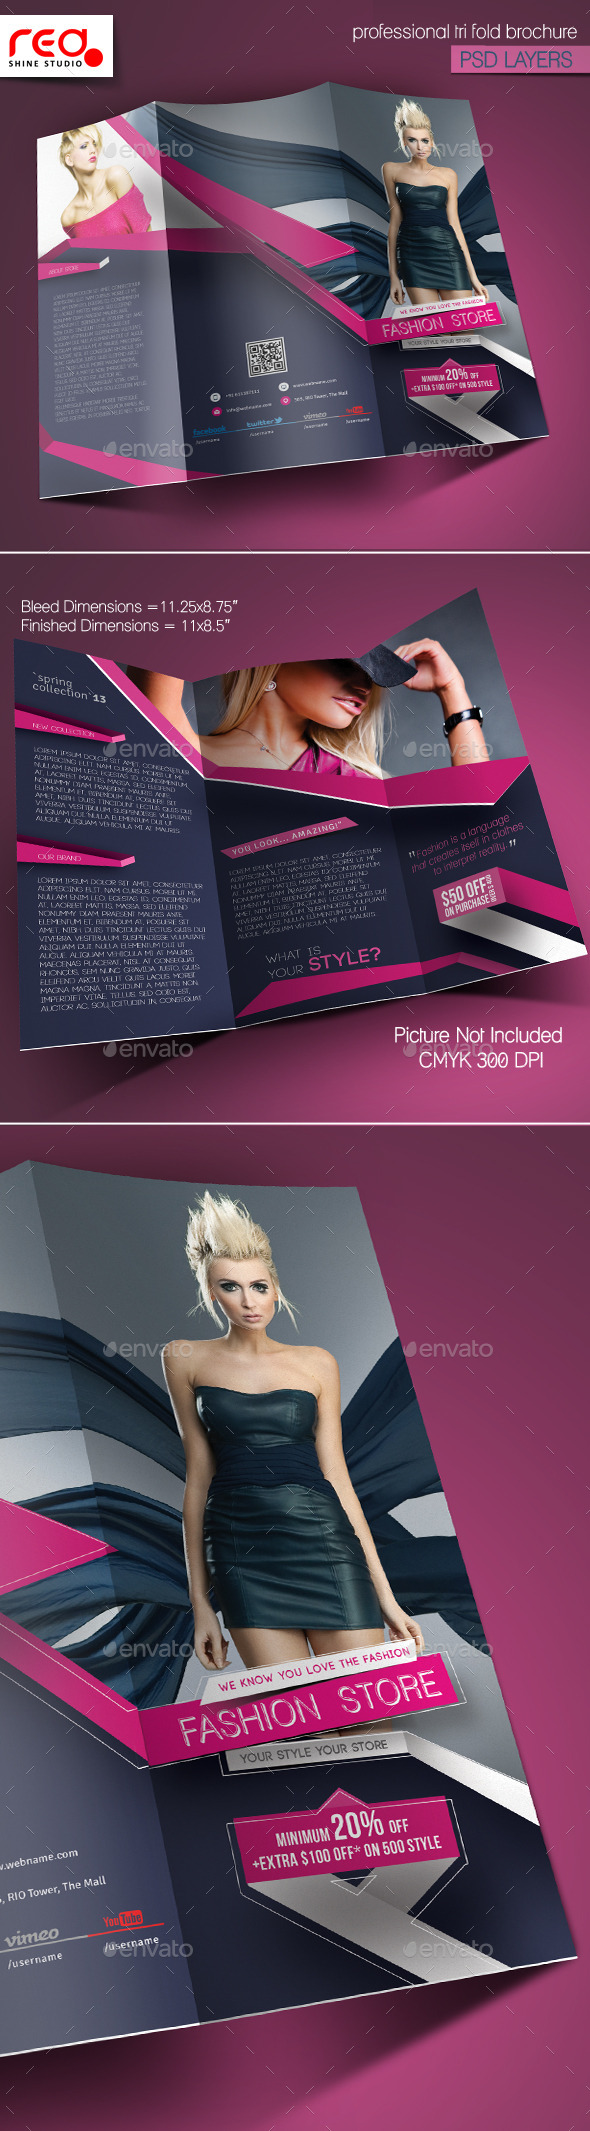 GraphicRiver Fashion Store Trifold Brochure Template 10466865